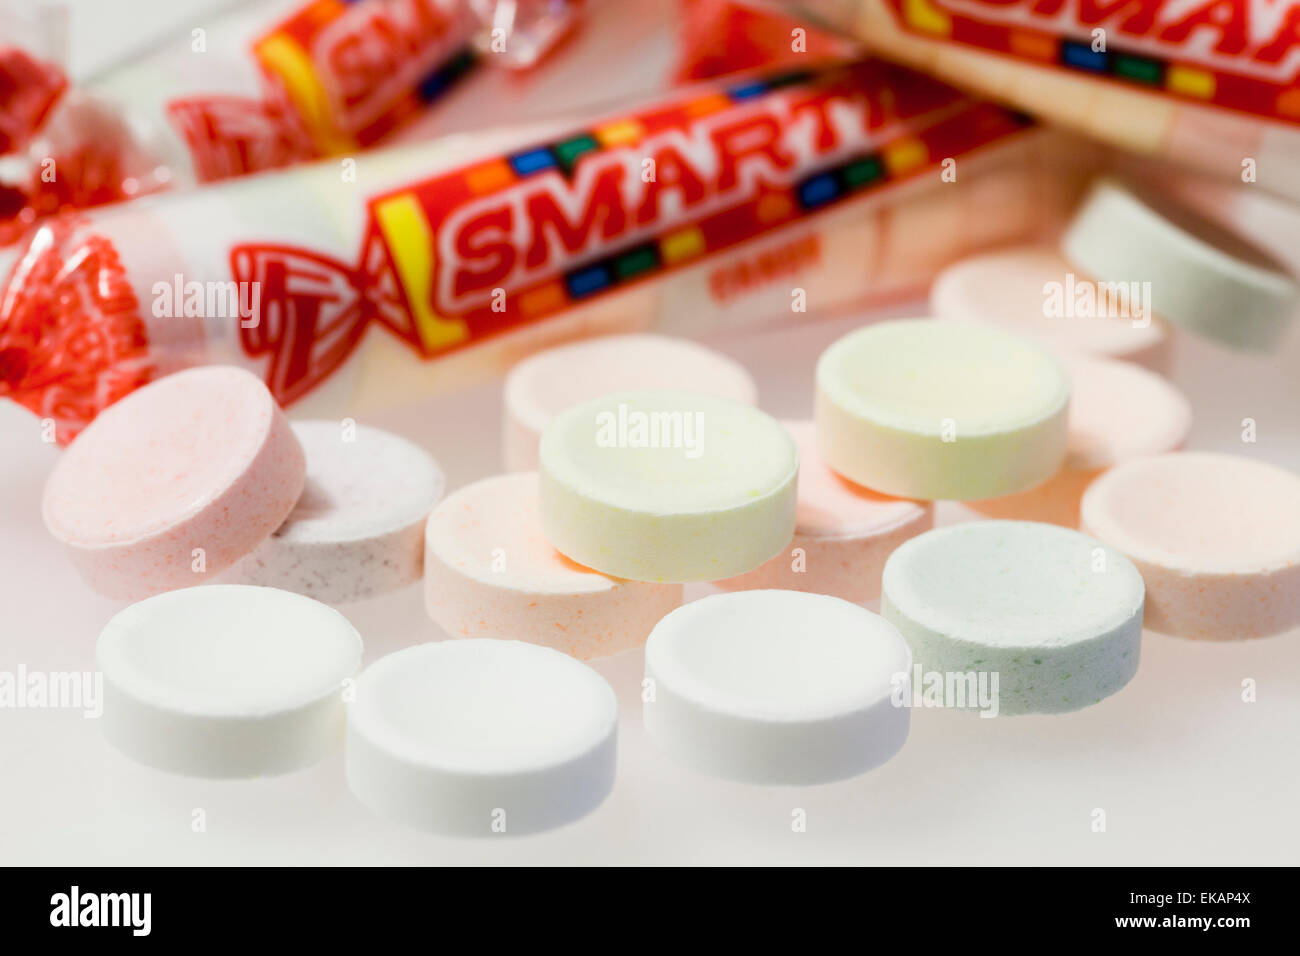 Smarties Candy Stock Photos & Smarties Candy Stock Images